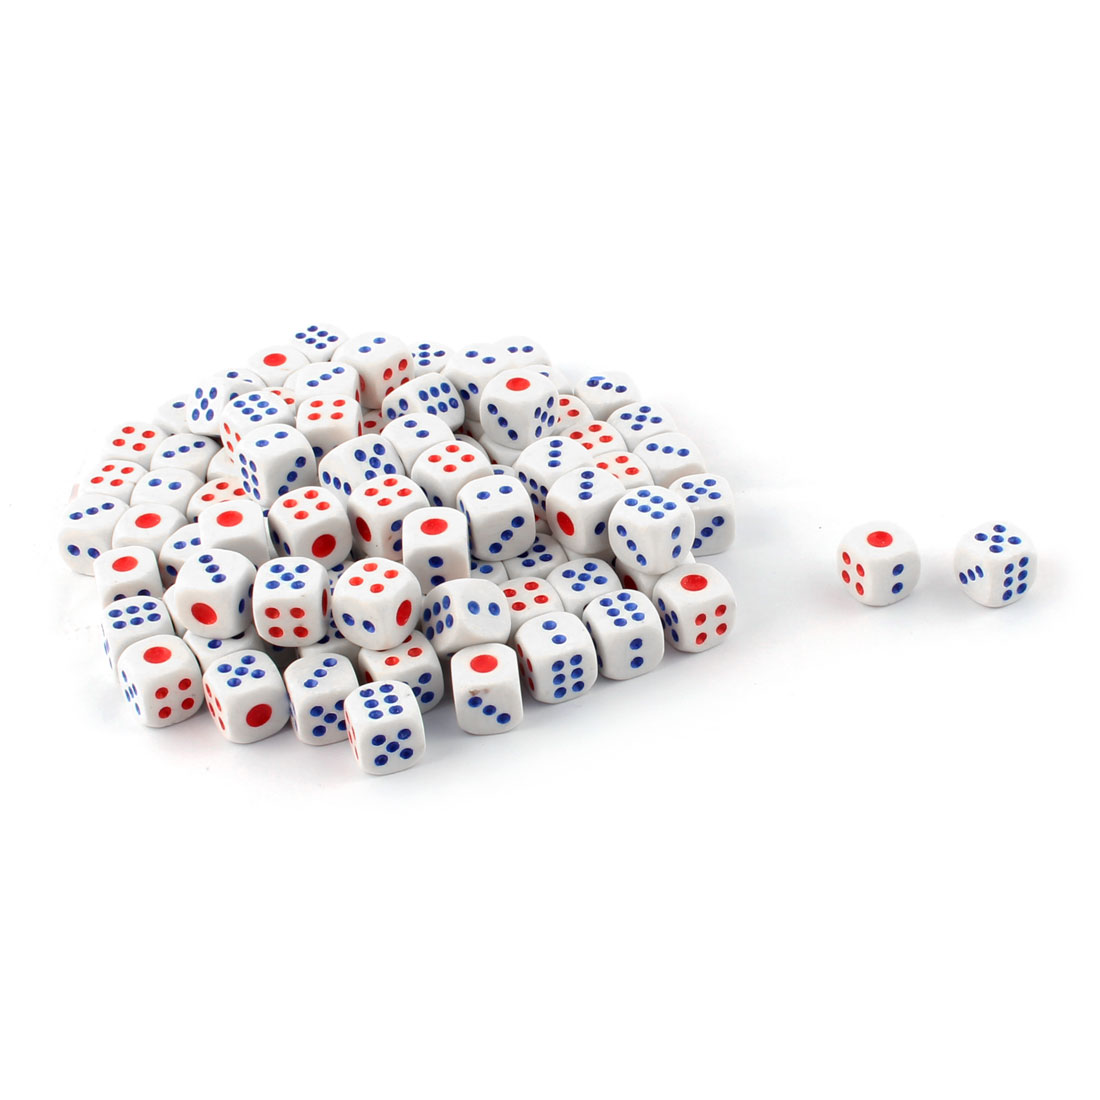 Entertainment Guessing Game Plastic Bar Casino Playing Dices White 0.6 Inches 100 Pcs